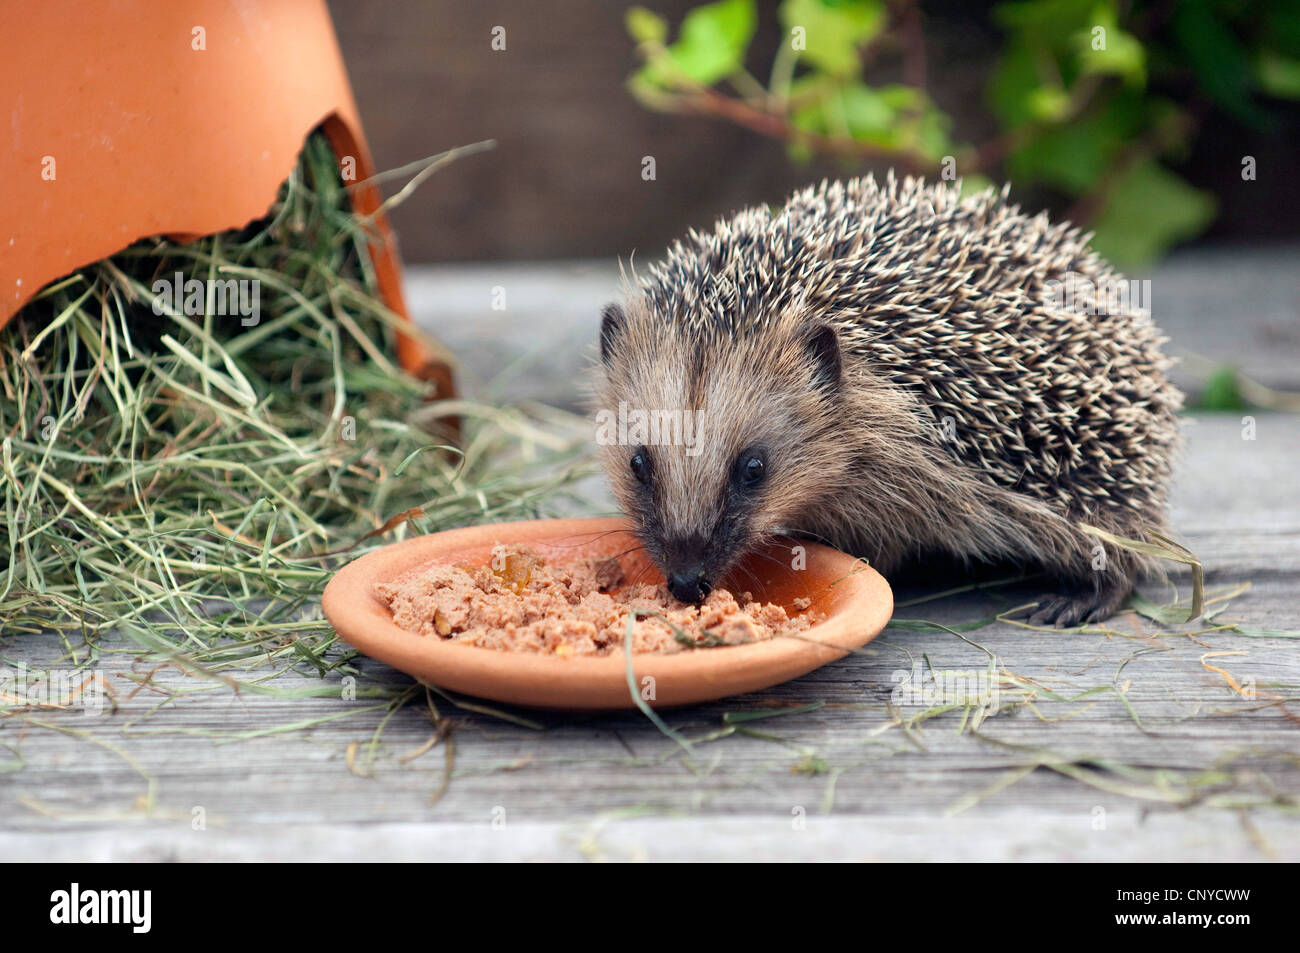 What Cat Food For Hedgehog